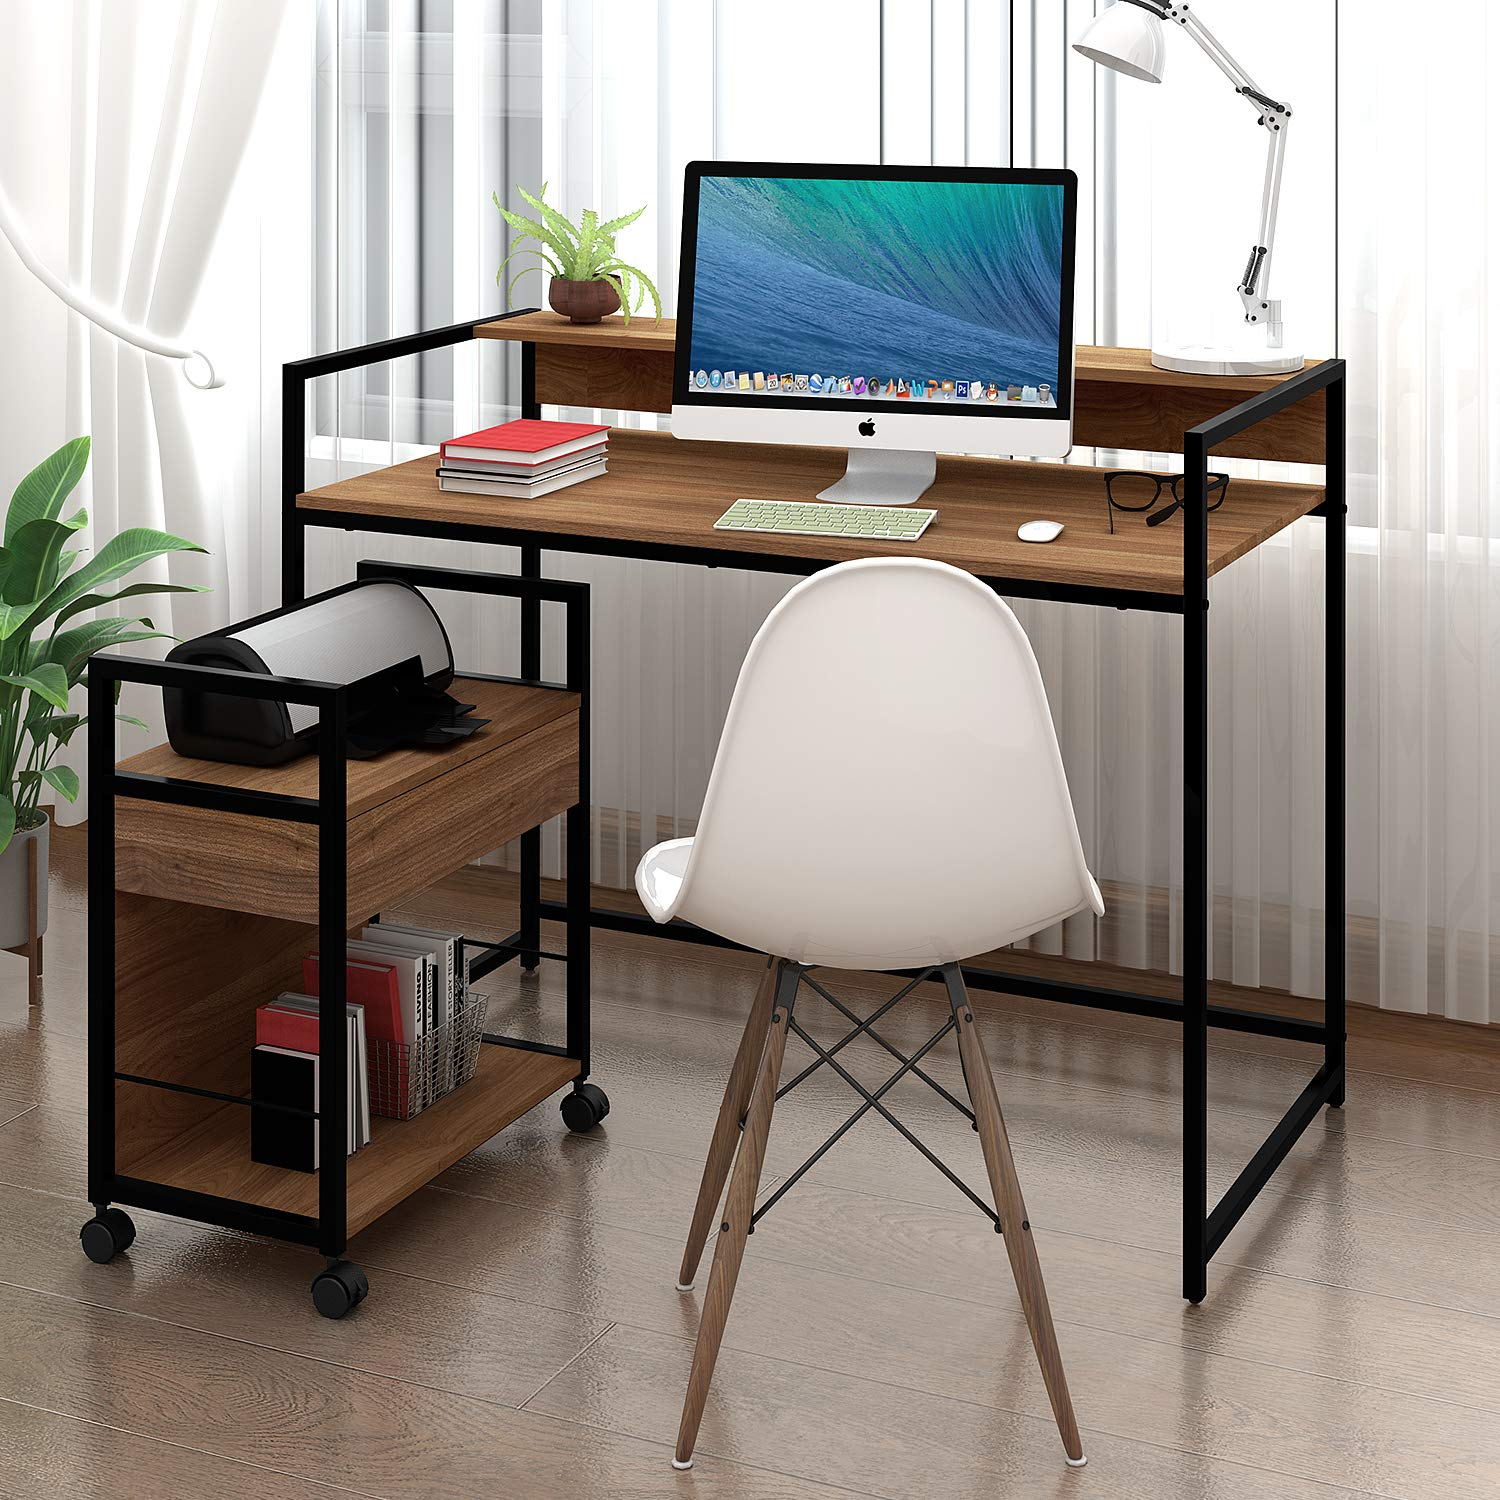 WLIVE Mobile Printer Stand, Office Serving Cart, Computer Side Table Machine Cart Stand with Storage Drawer for Home Office by WLIVE (Image #2)